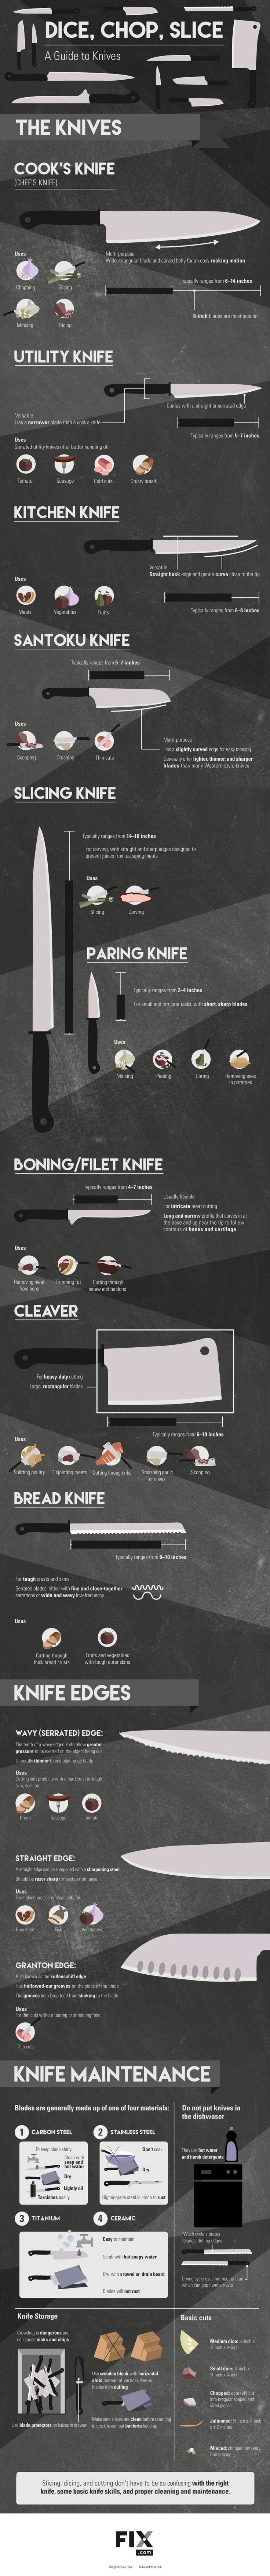 Ultimate Kitchen Knife Guide on Plating Pixels. Best knives to use in the kitchen. What each knife is for, how to use knives, and how to maintain kitchen knives. utility, kitchen, santoku, slicing/carving, paring, boning/filet, cleaver, and bread knife. - www.platingpixels.com